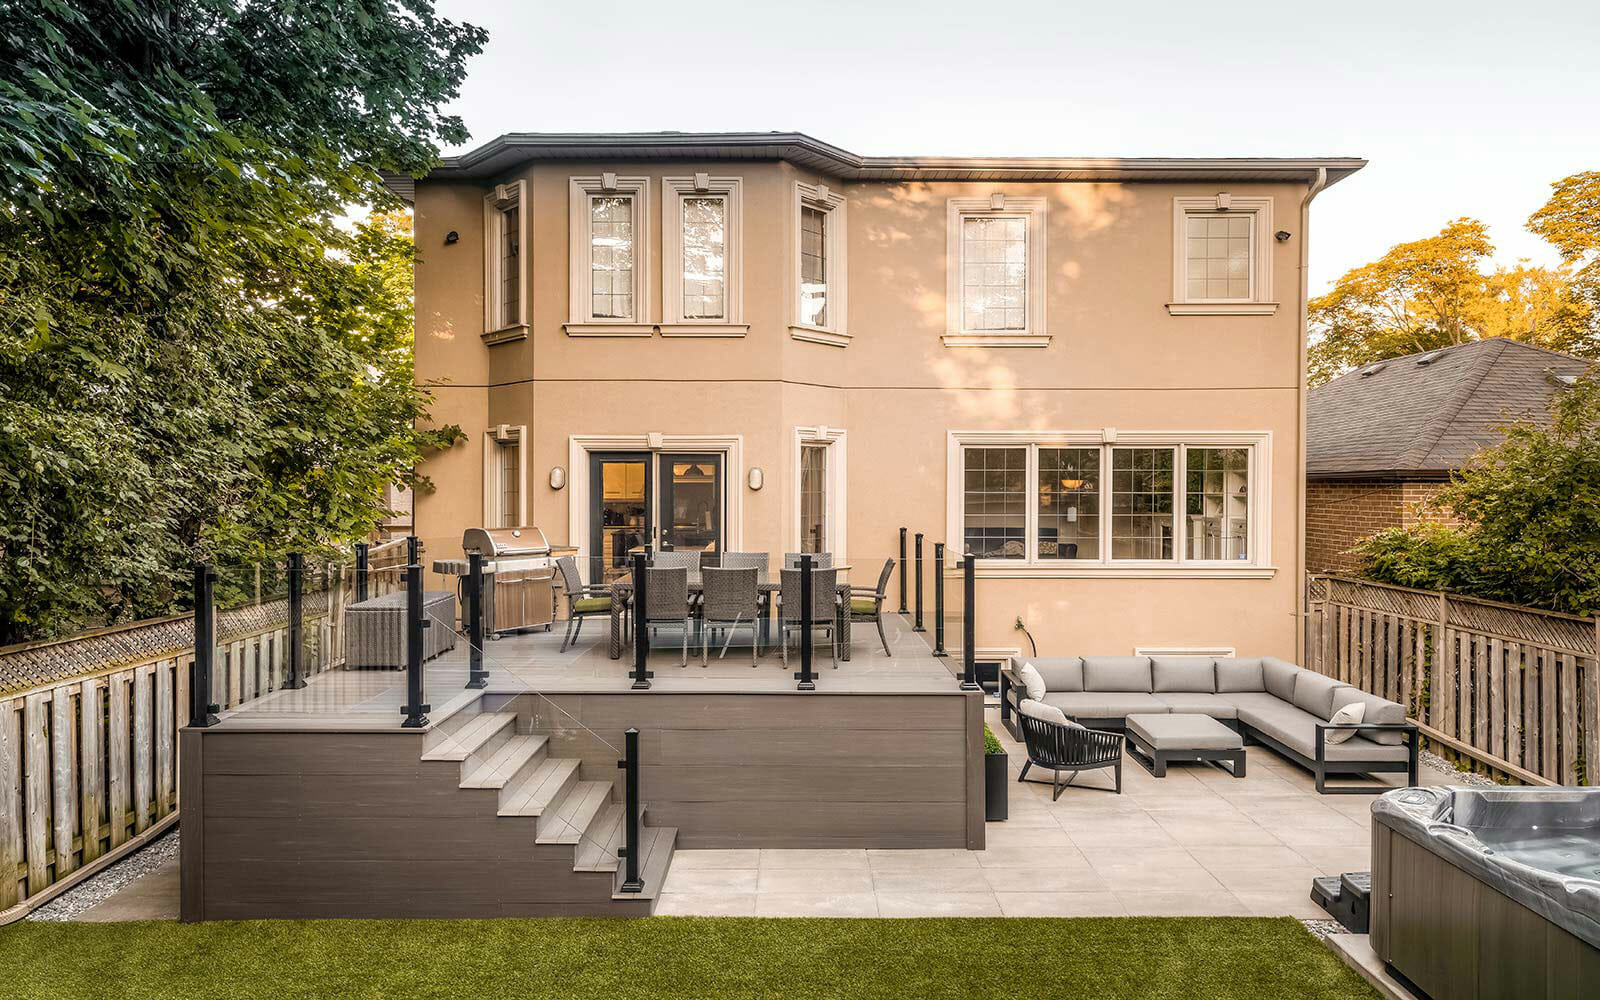 AZEK Decking Project Toronto; Featuring Patio Design, Interlocking, Privacy Fence & Aluminum Glass Railings by Toronto Landscaping Company.